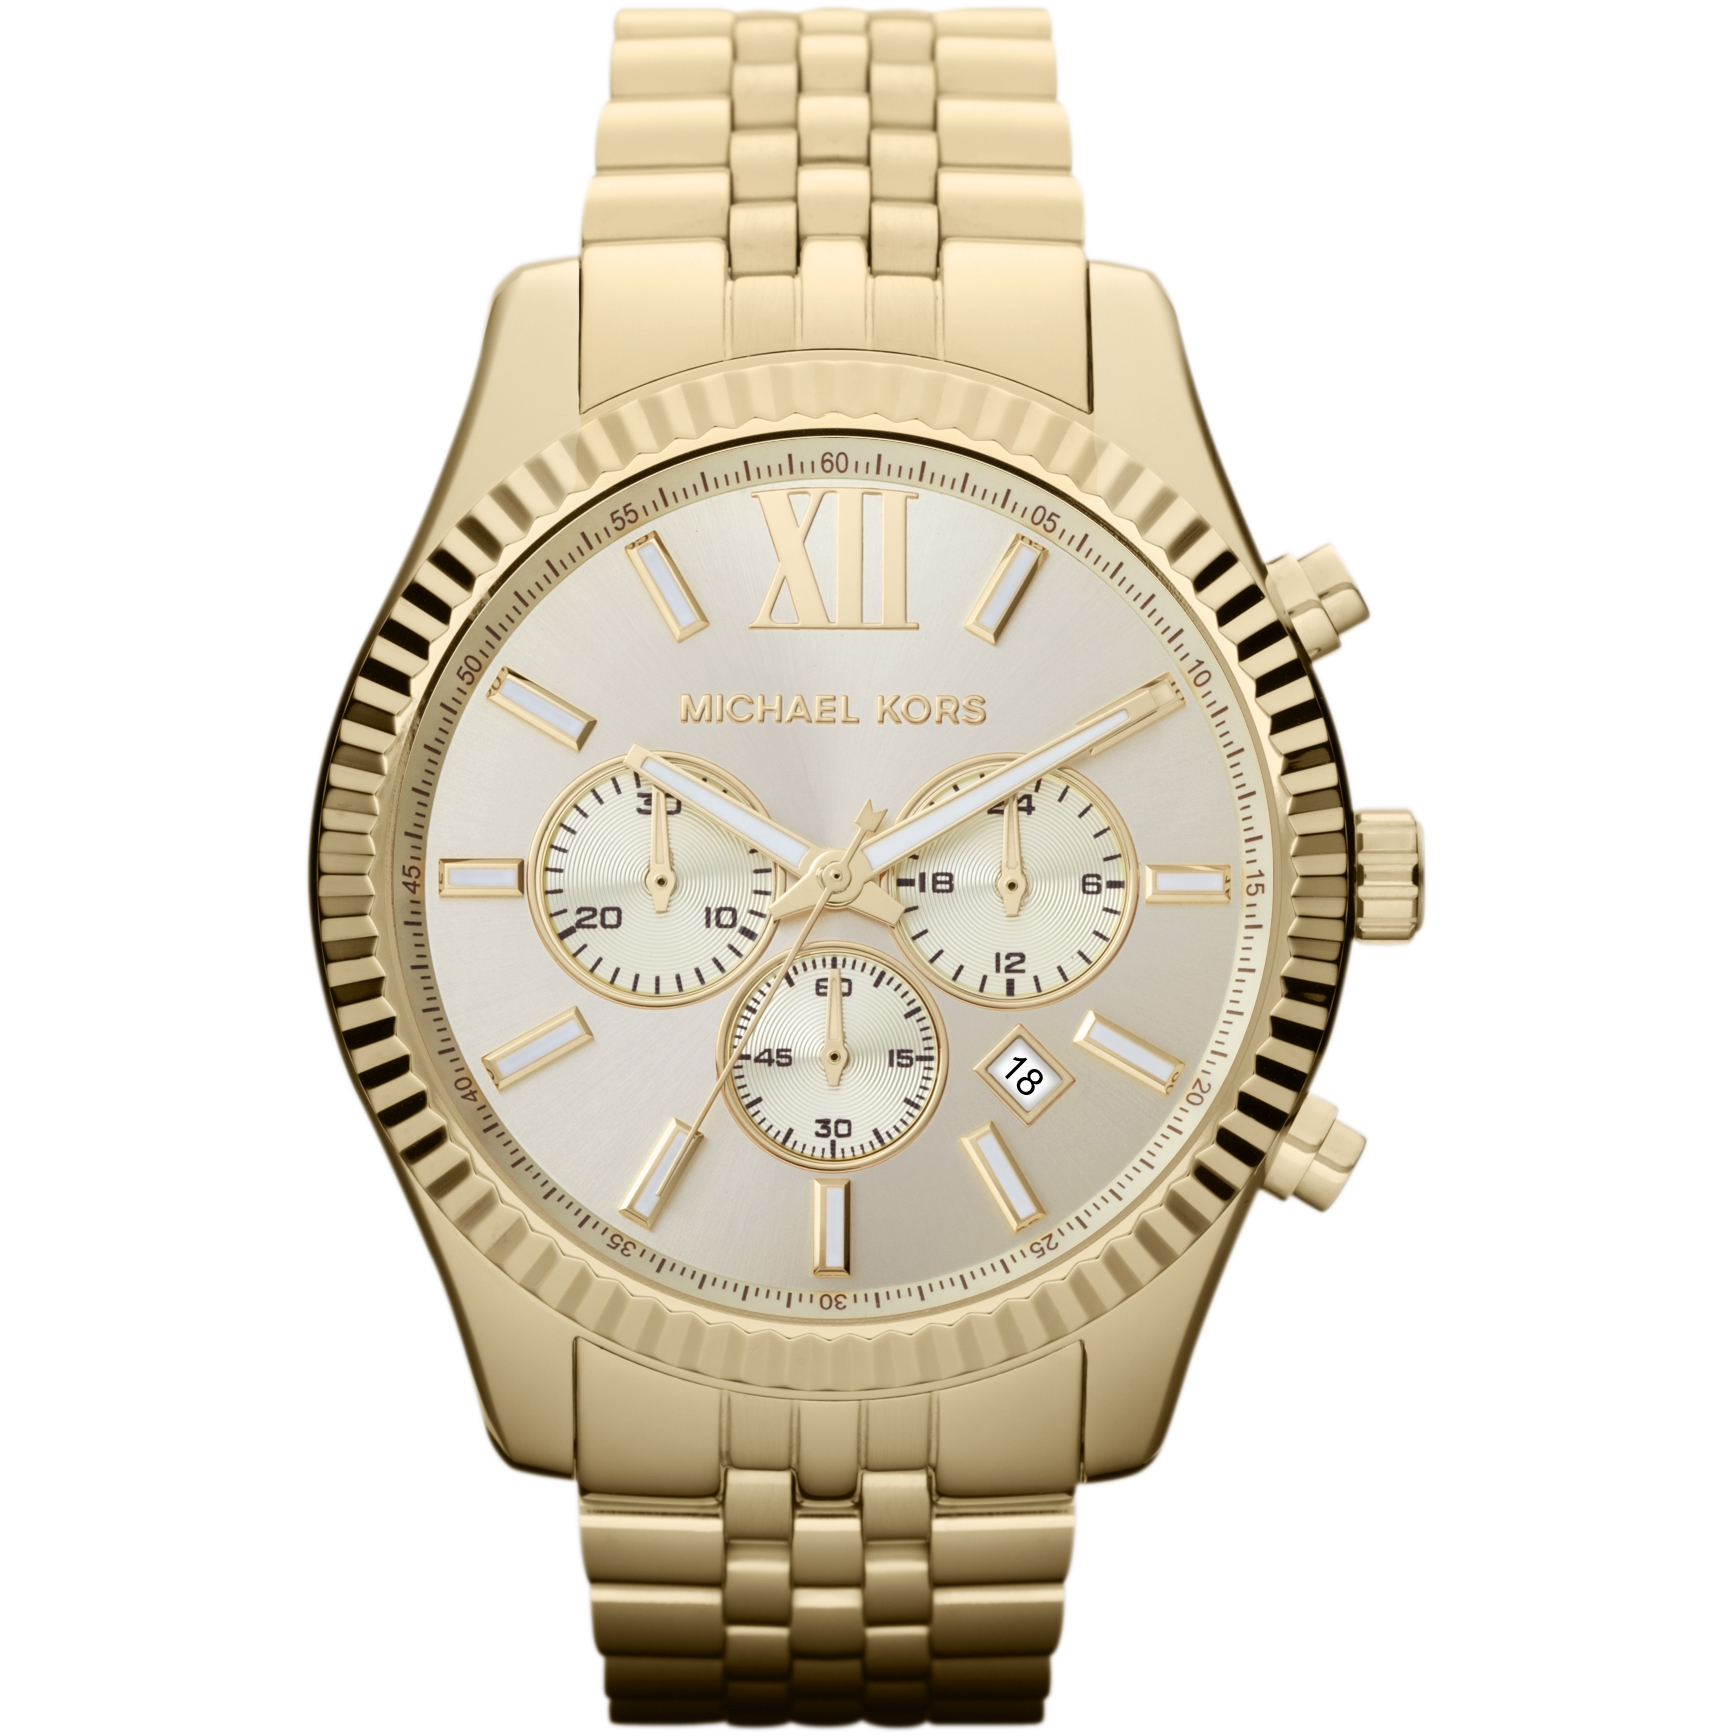 c088c76ebce3 Gents Michael Kors Lexington Chronograph Watch (MK8281)